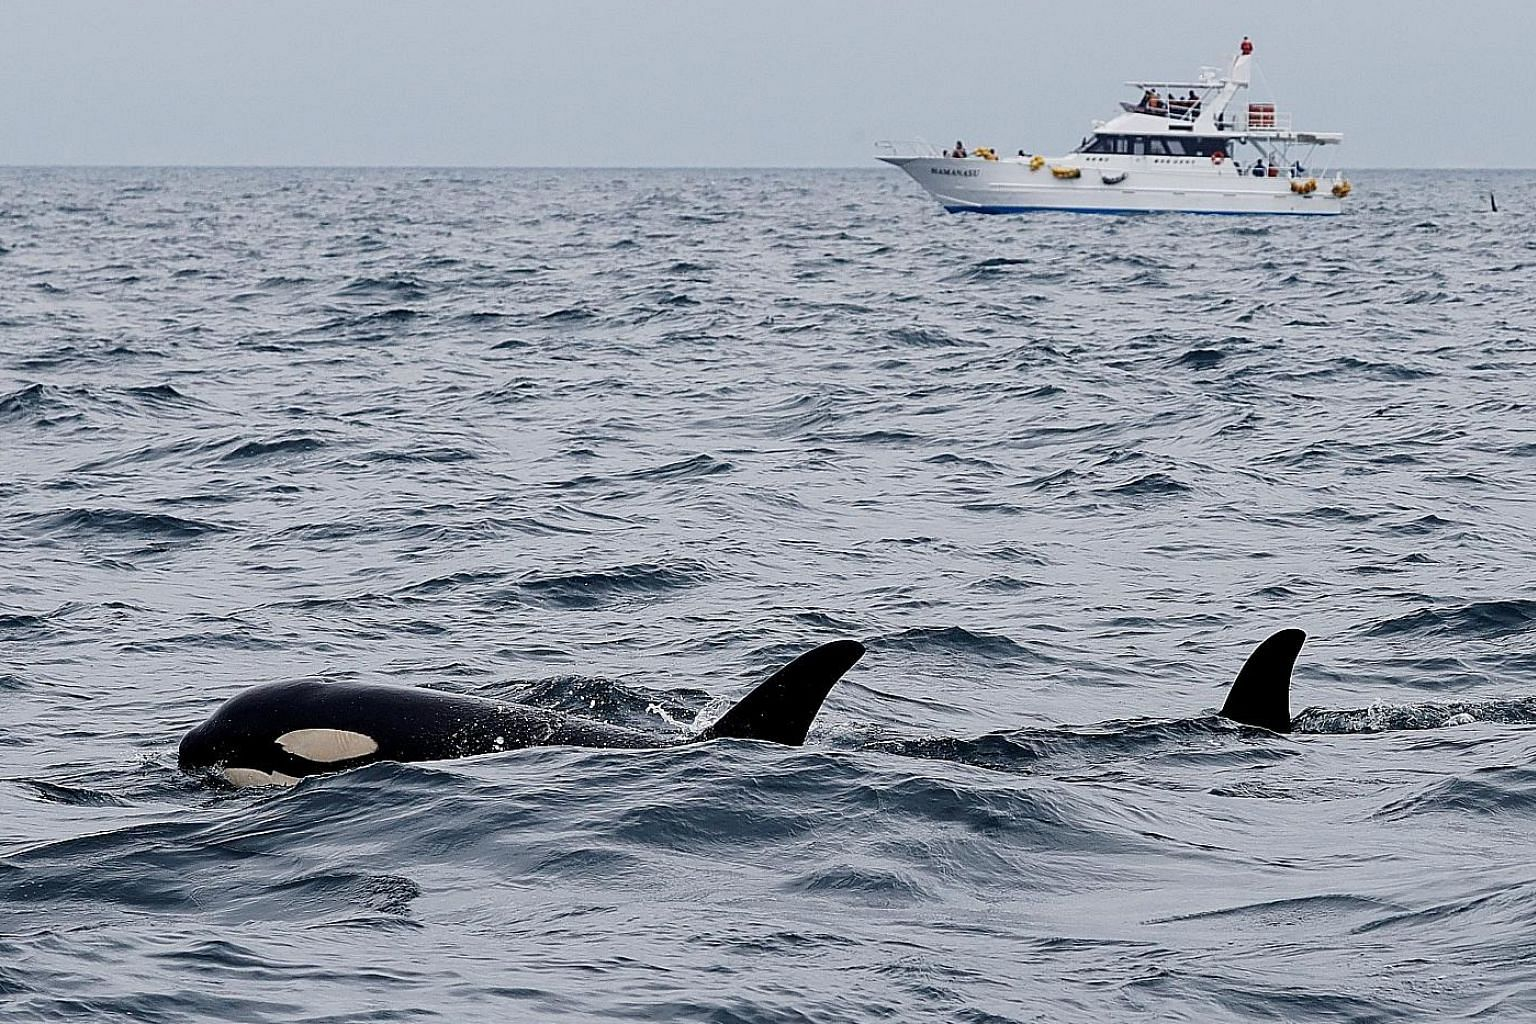 Whale-watching boat captain Masato Hasegawa (above) sounding the alert that killer whales (right) are spotted in the sea near Rausu in Hokkaido. PHOTOS: REUTERS